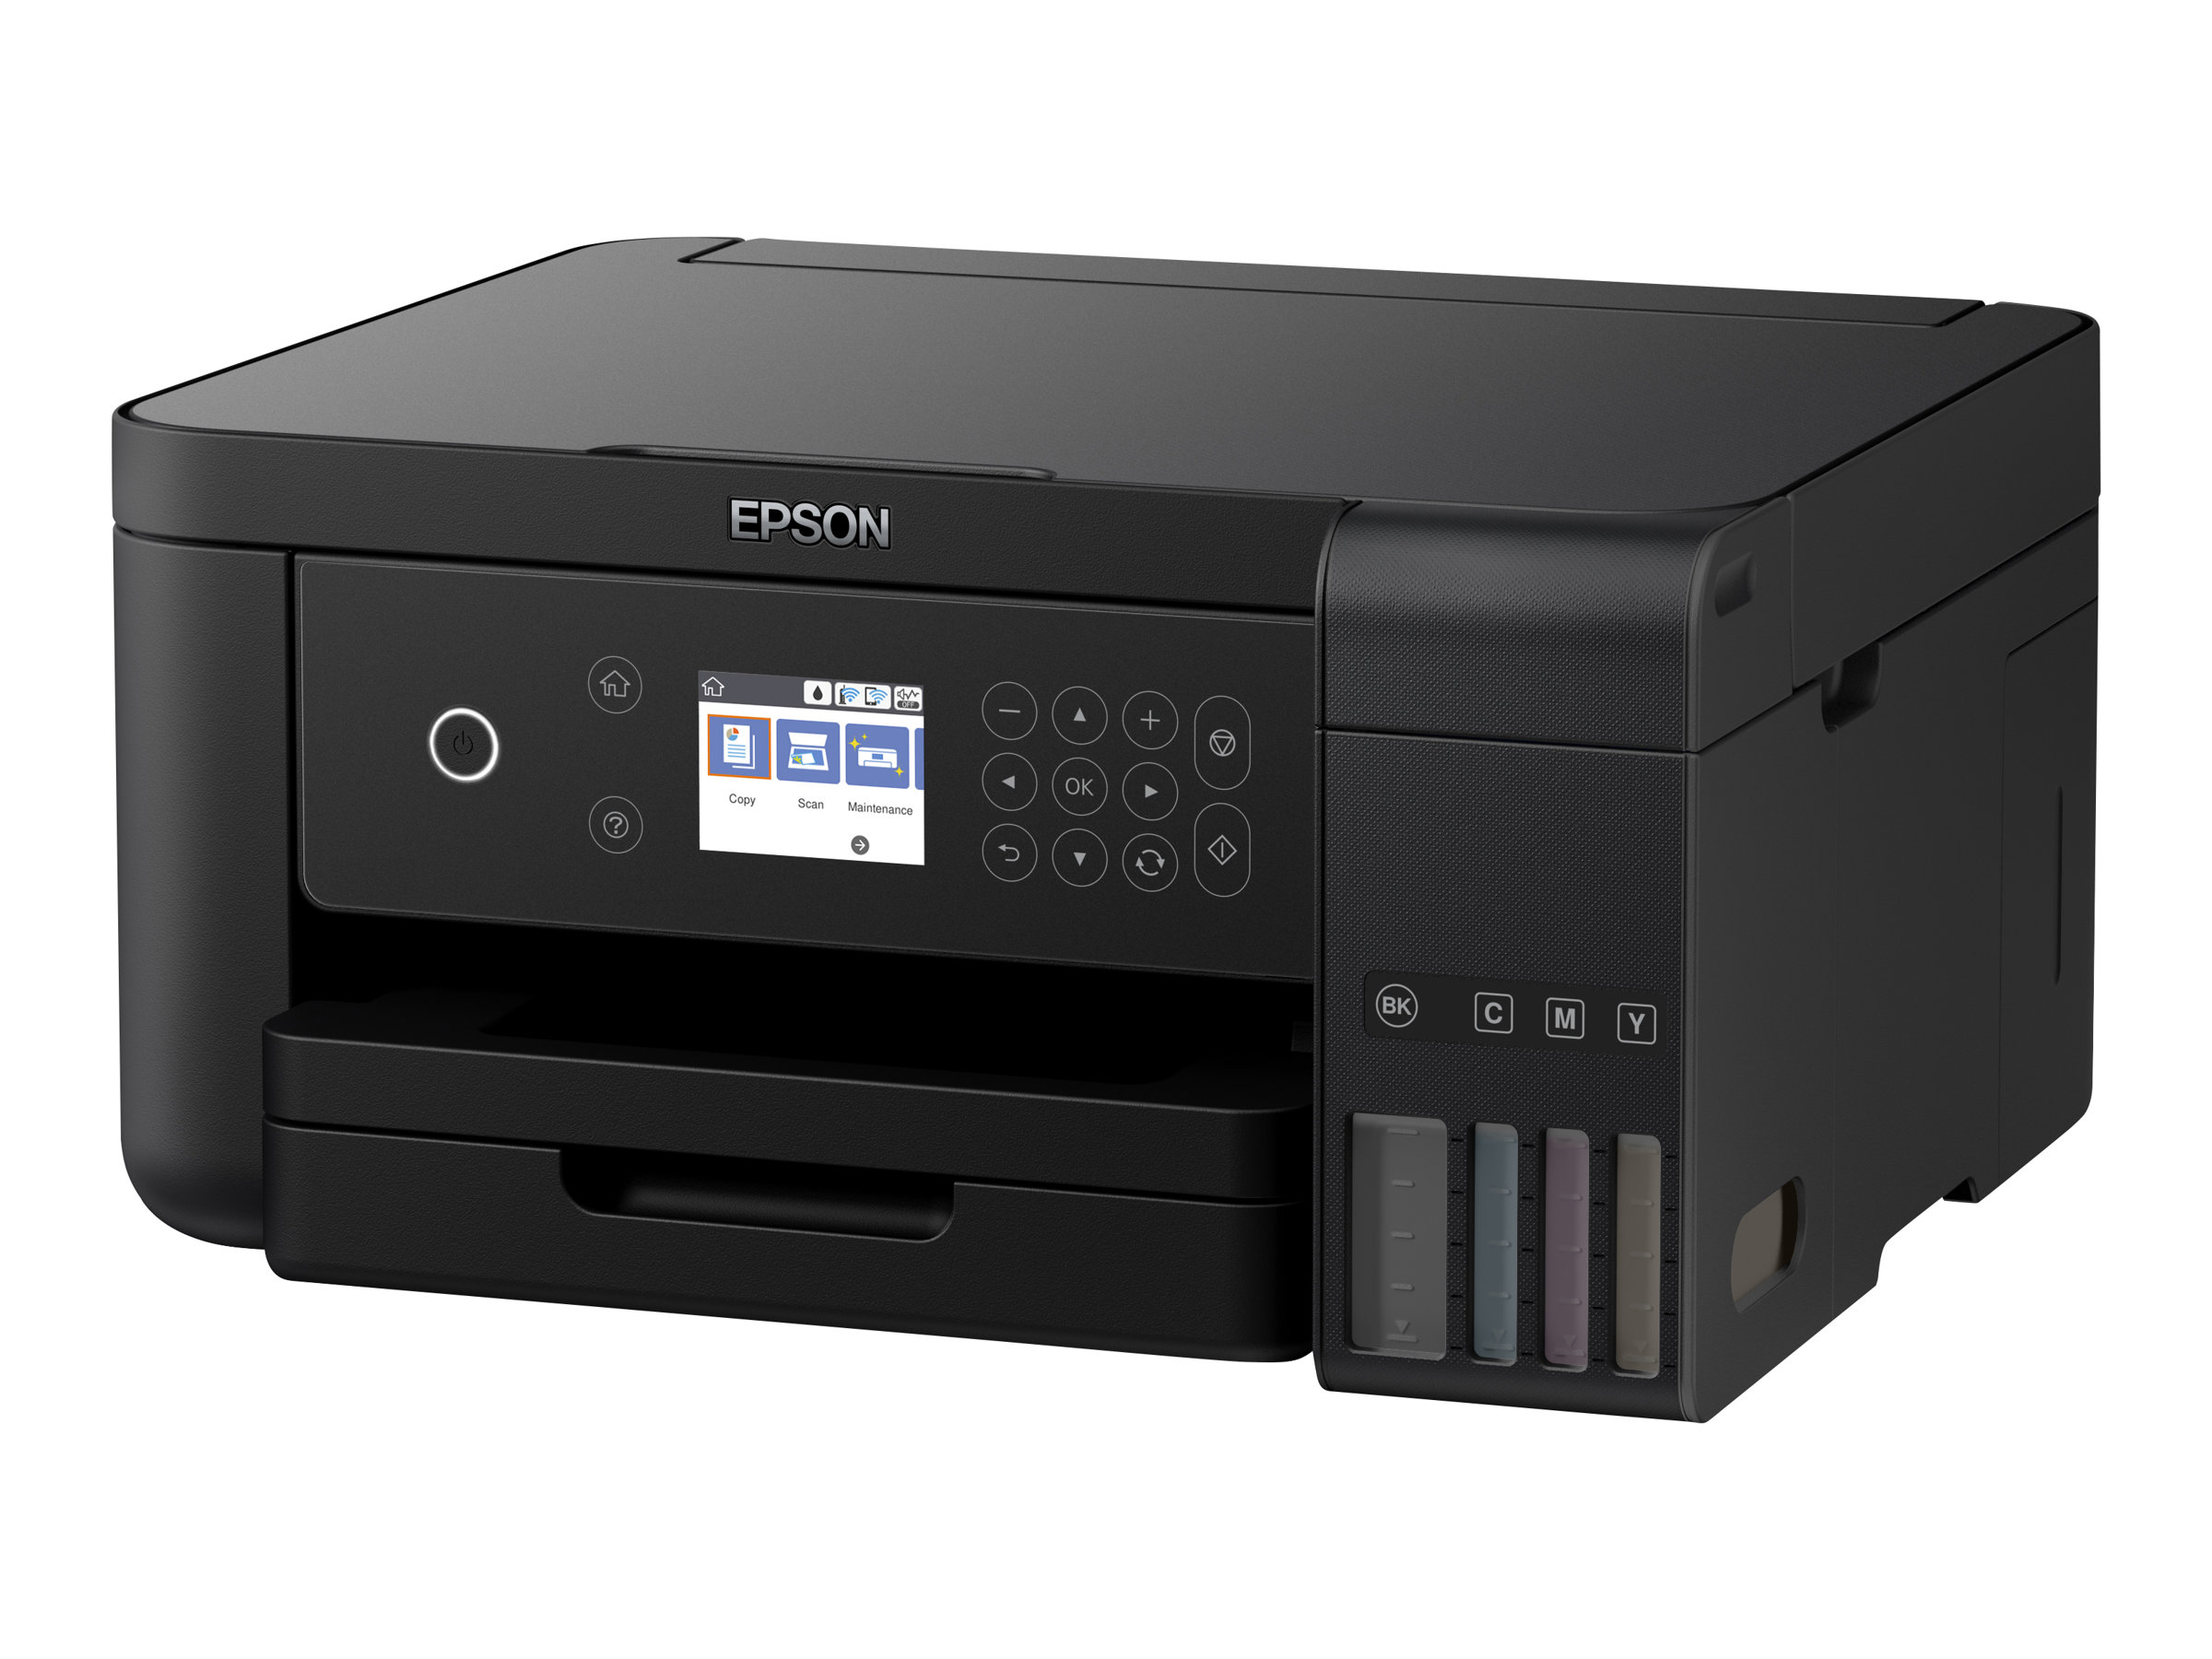 Epson EcoTank ET-3700 - Multifunktionsdrucker